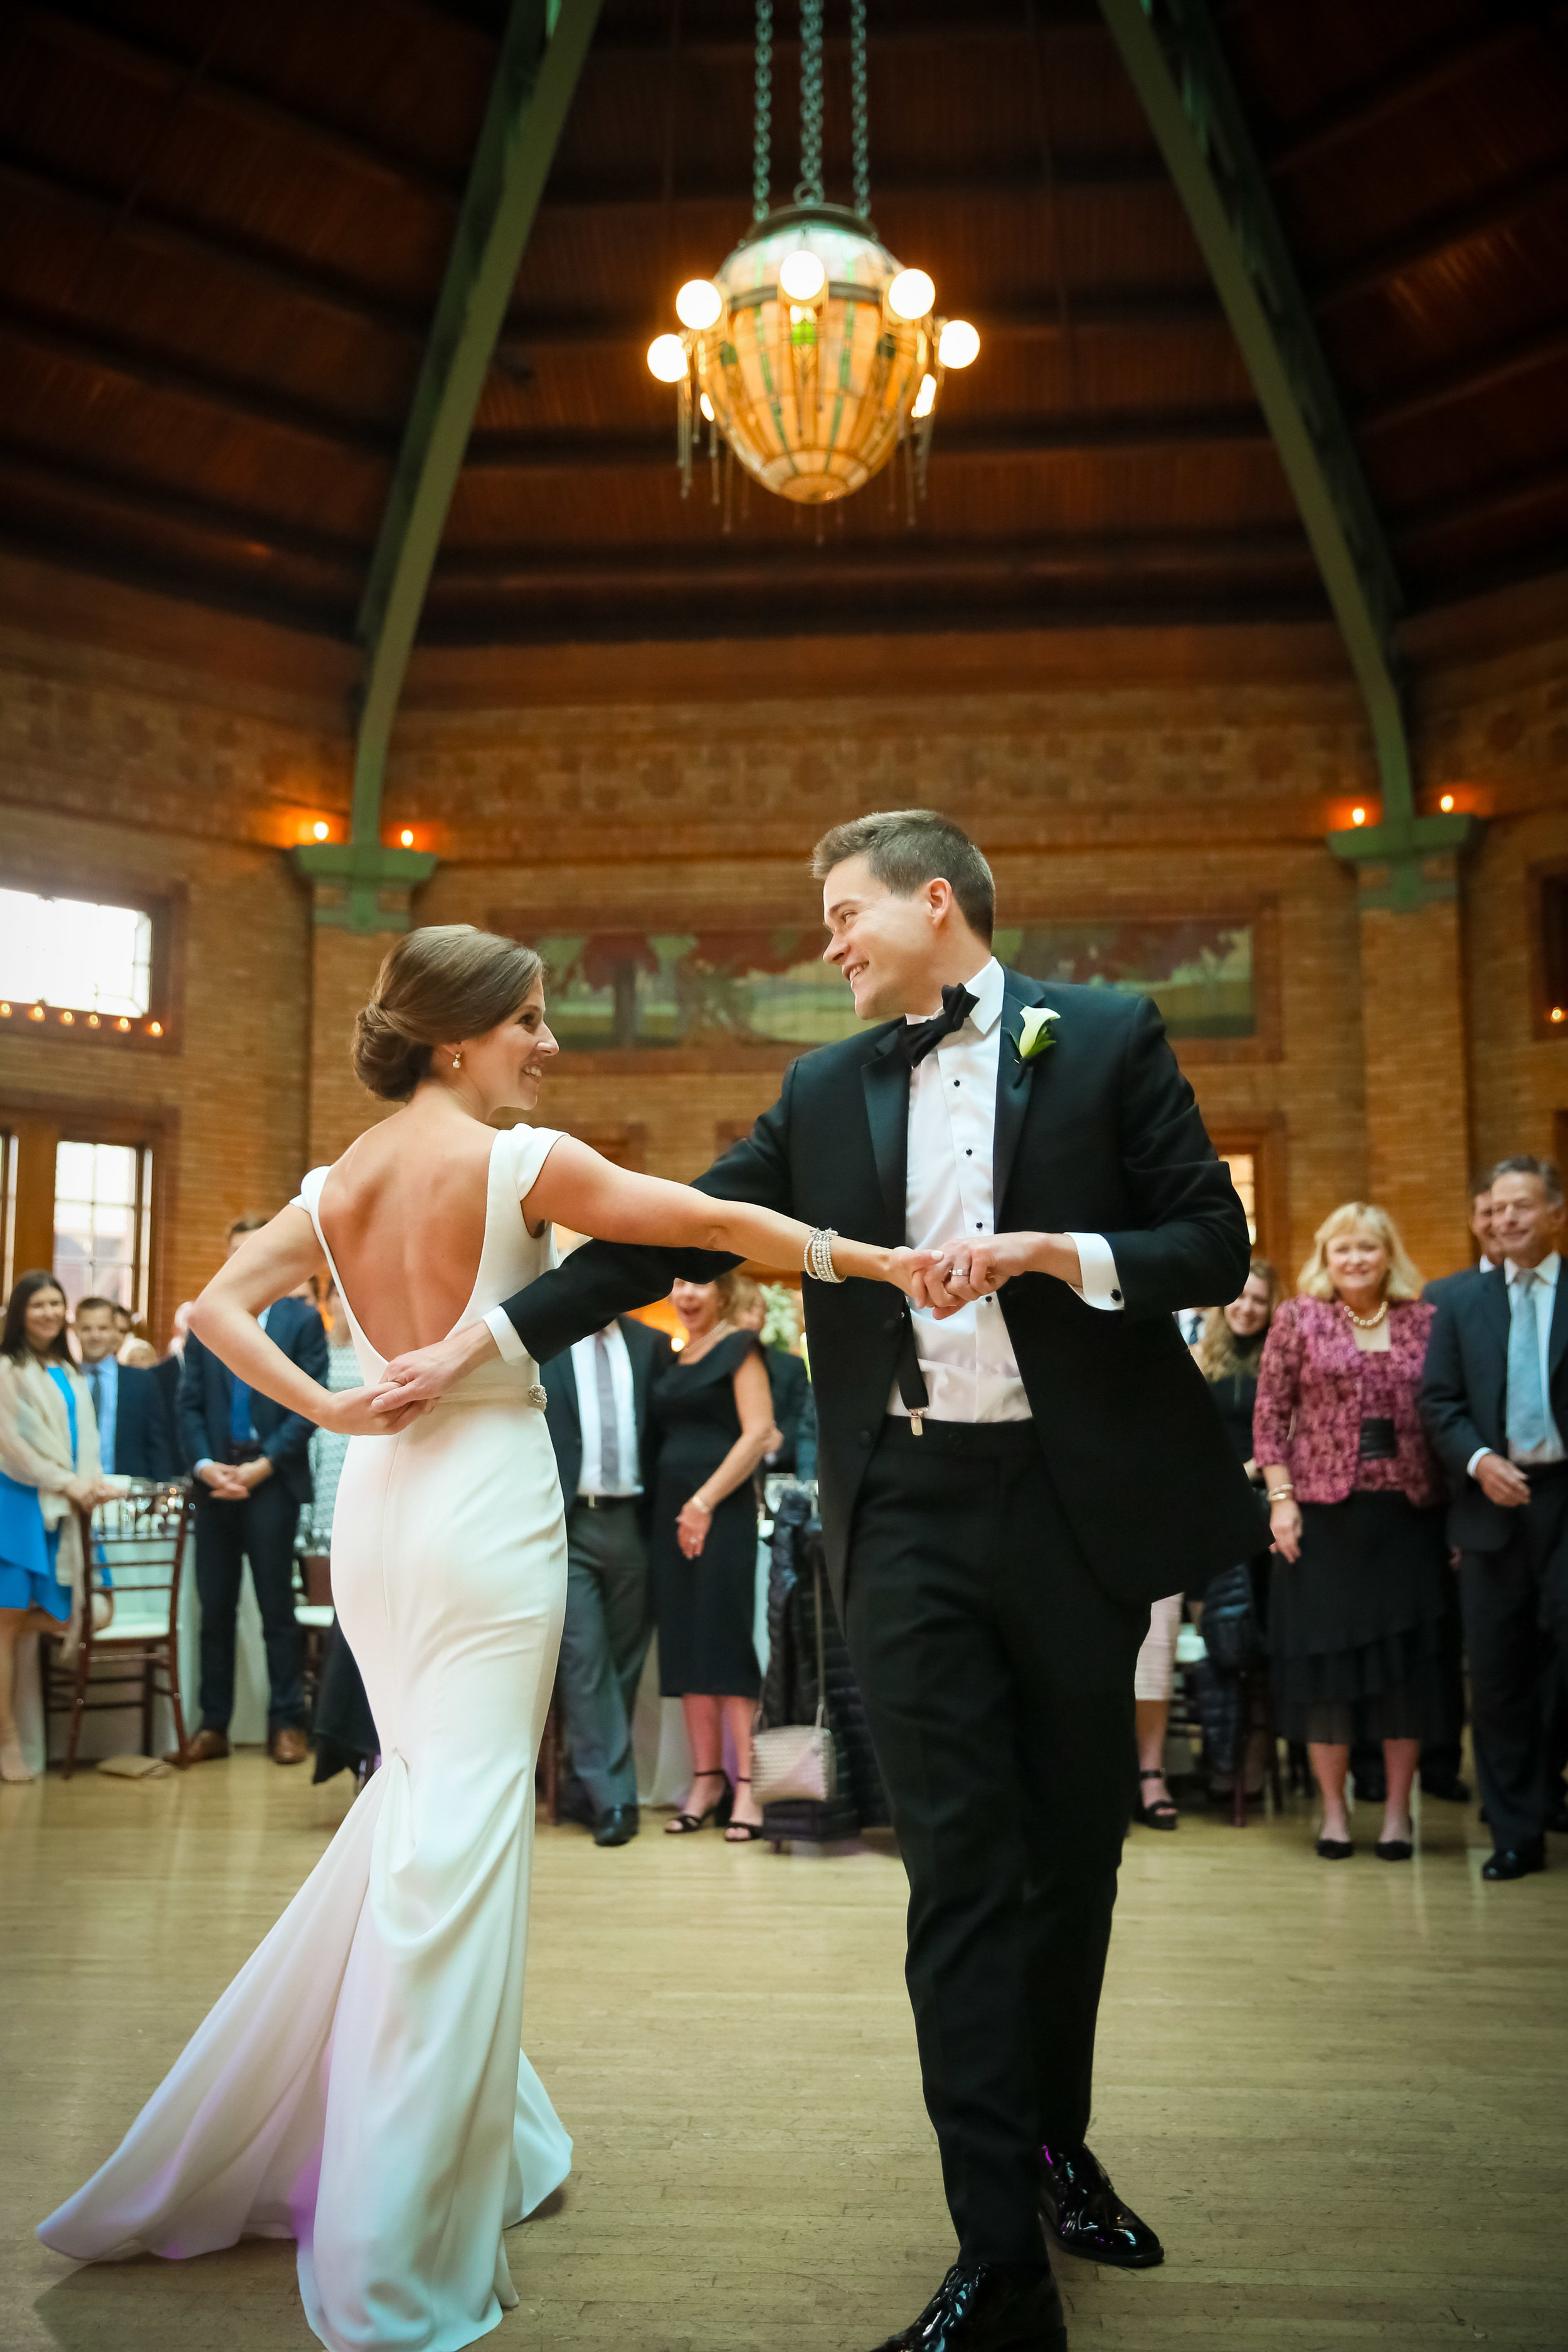 Bride and groom doing a fancy dance move during their first dance.